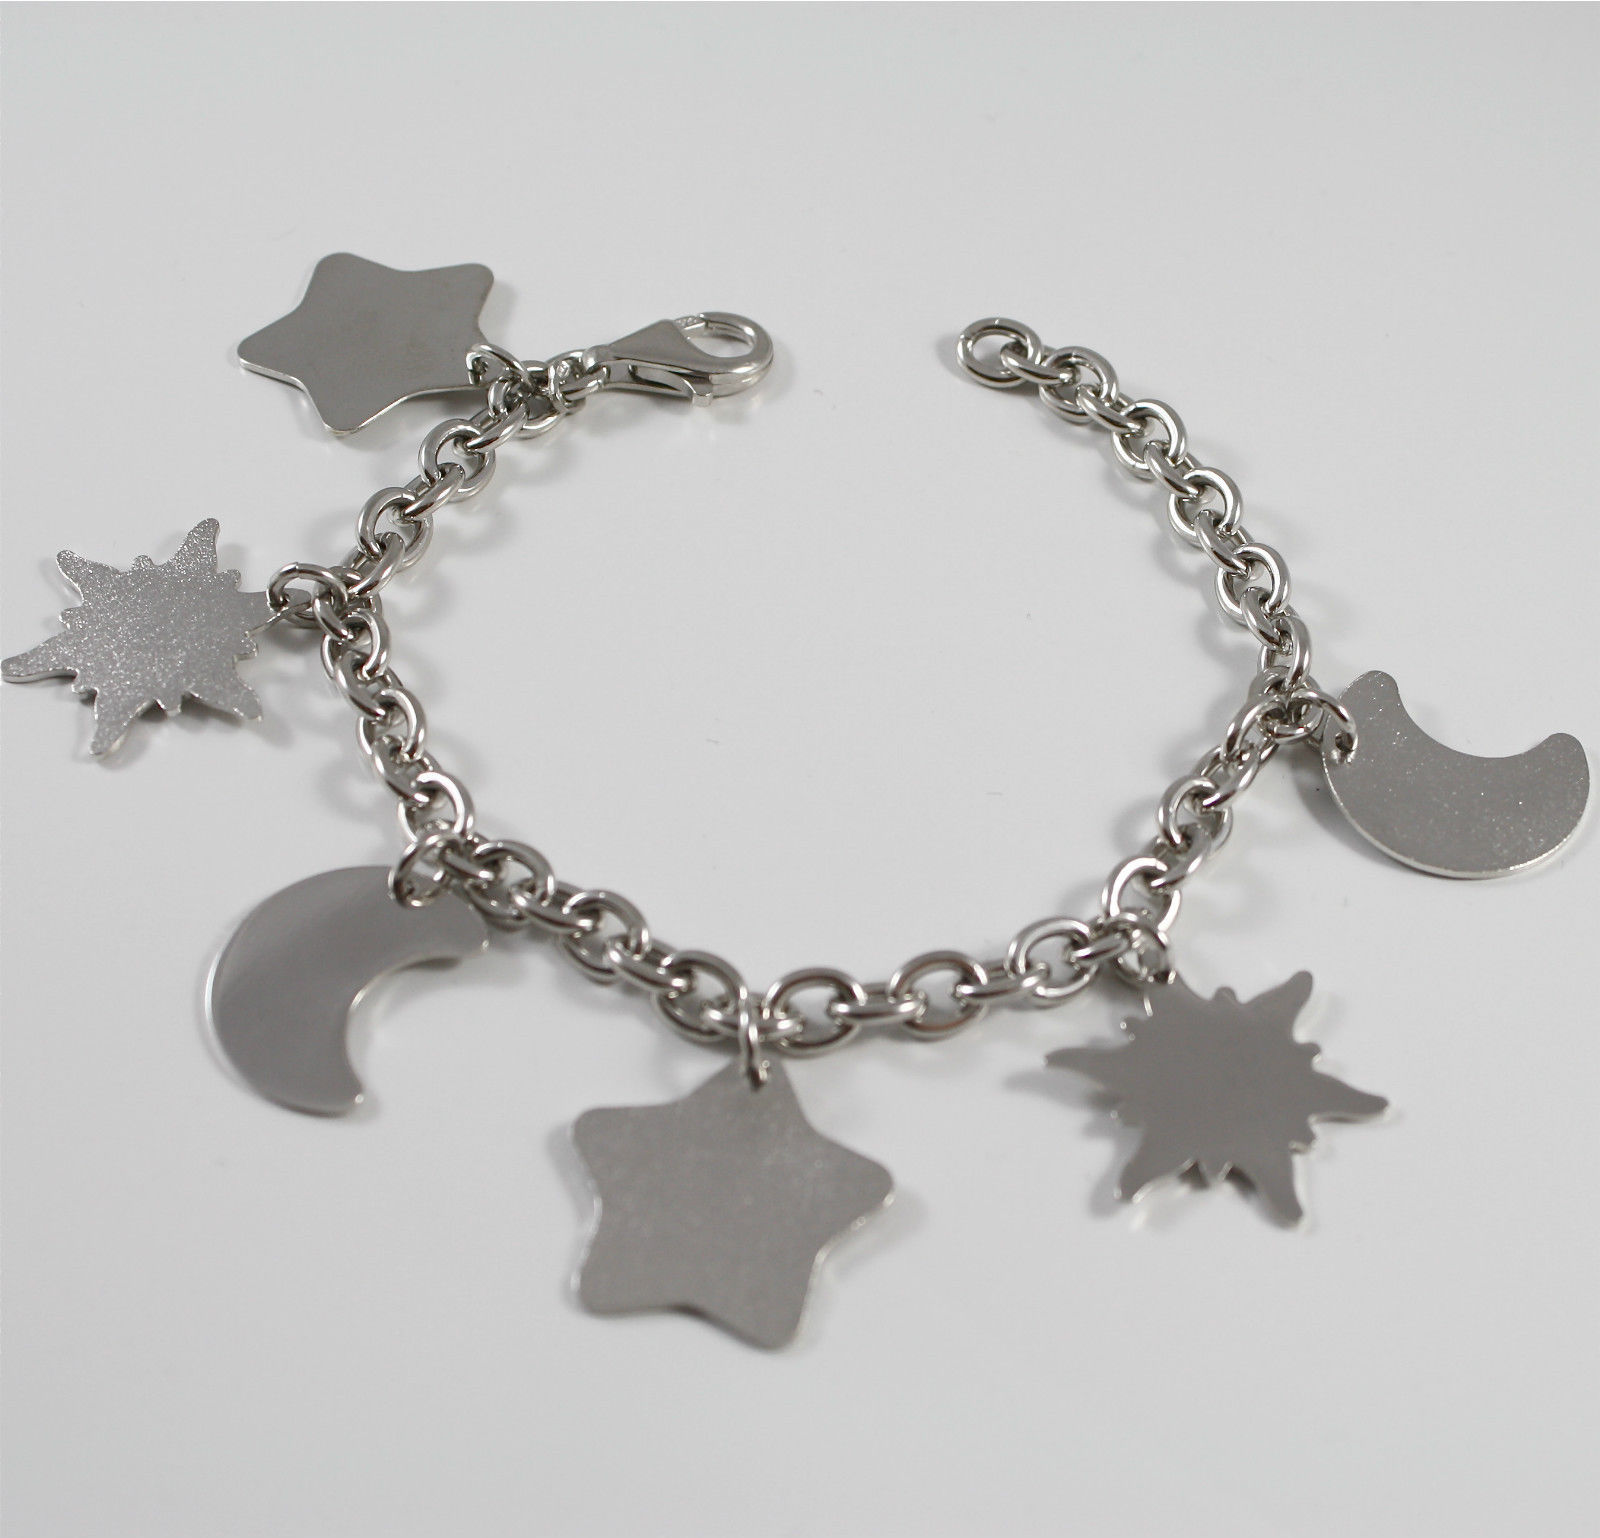 Bracelet in Sterling Silver 925 Rhodium, with Charms Shaped Moons, Stars, Suns